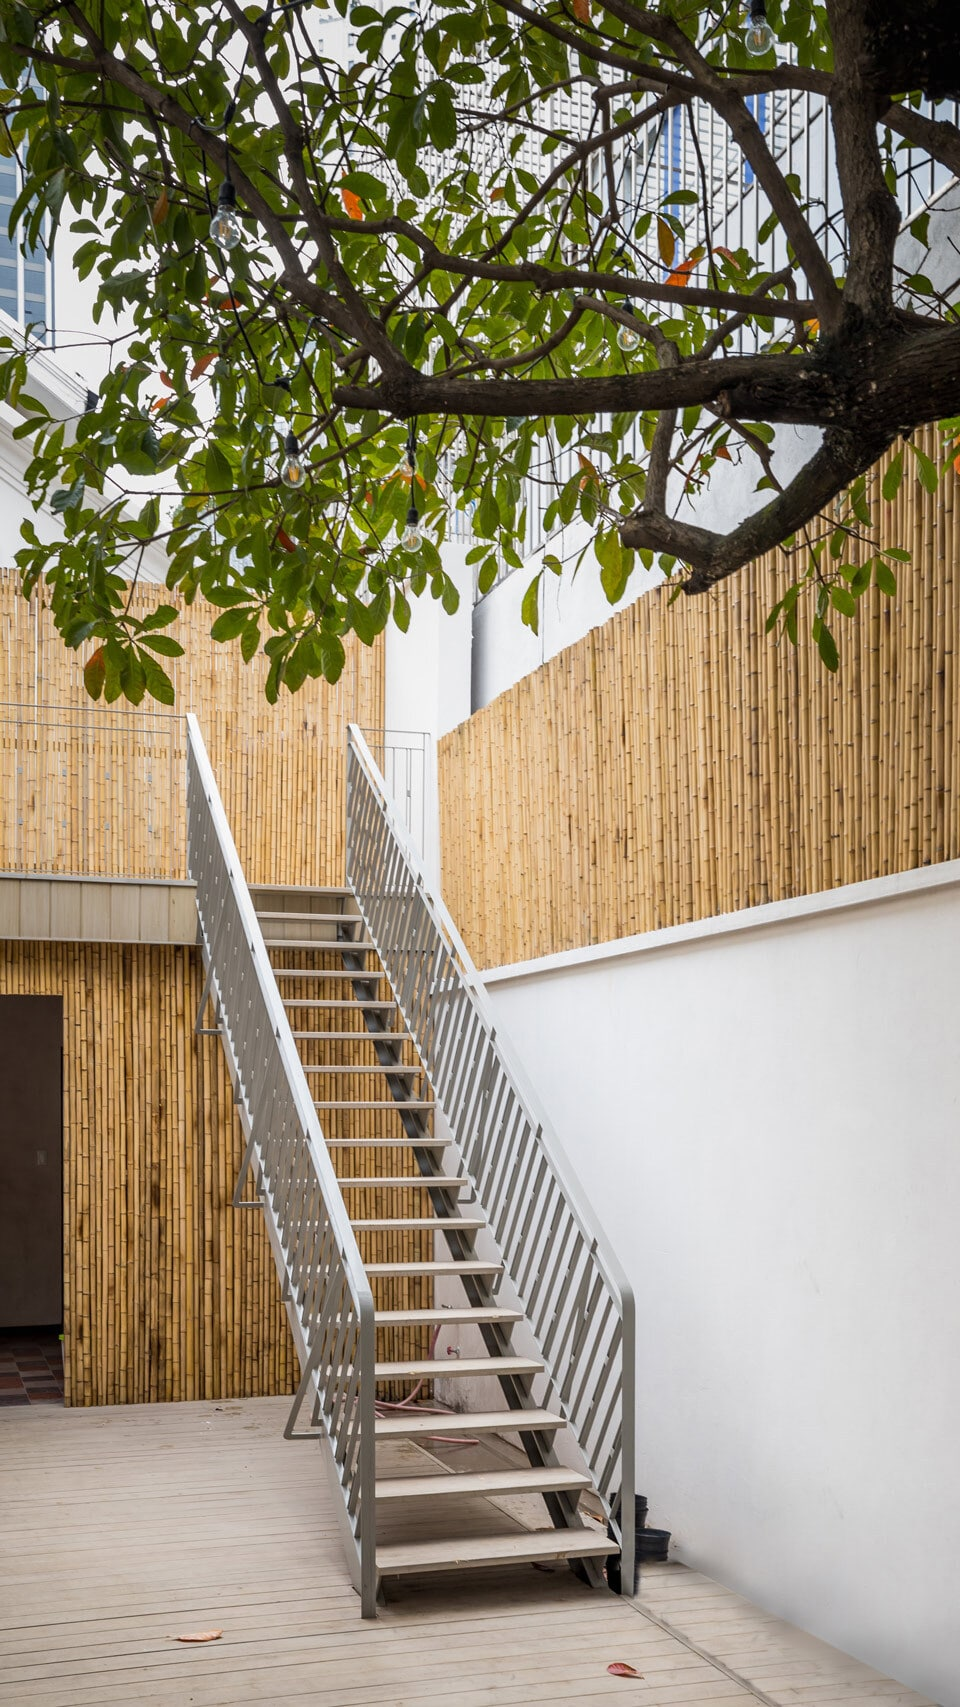 This is a look at the outdoor staircase of the house fitted with bamboo accents on the walls.